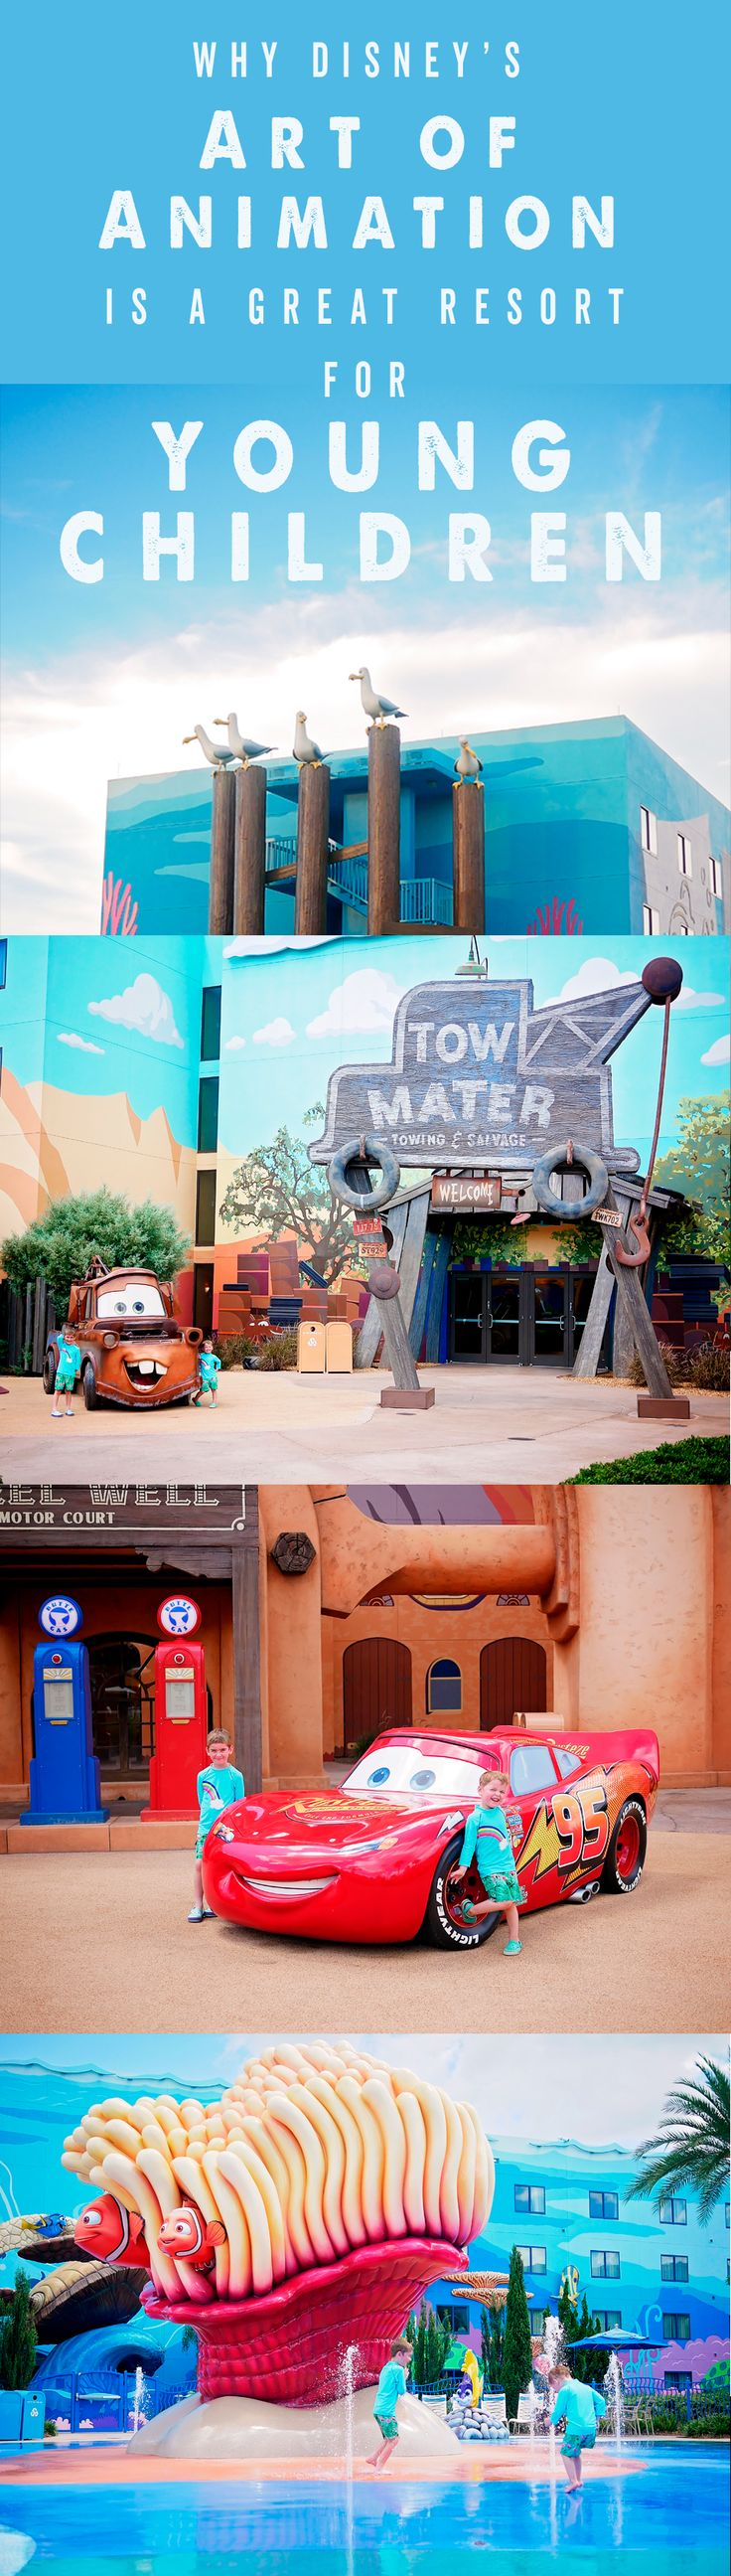 Disney hotels for young children. Disney resorts for young children. Why disney's art of animation is great for young children. Art of animation review. Disney World hotels. Disney World resorts. Disney World accommodation